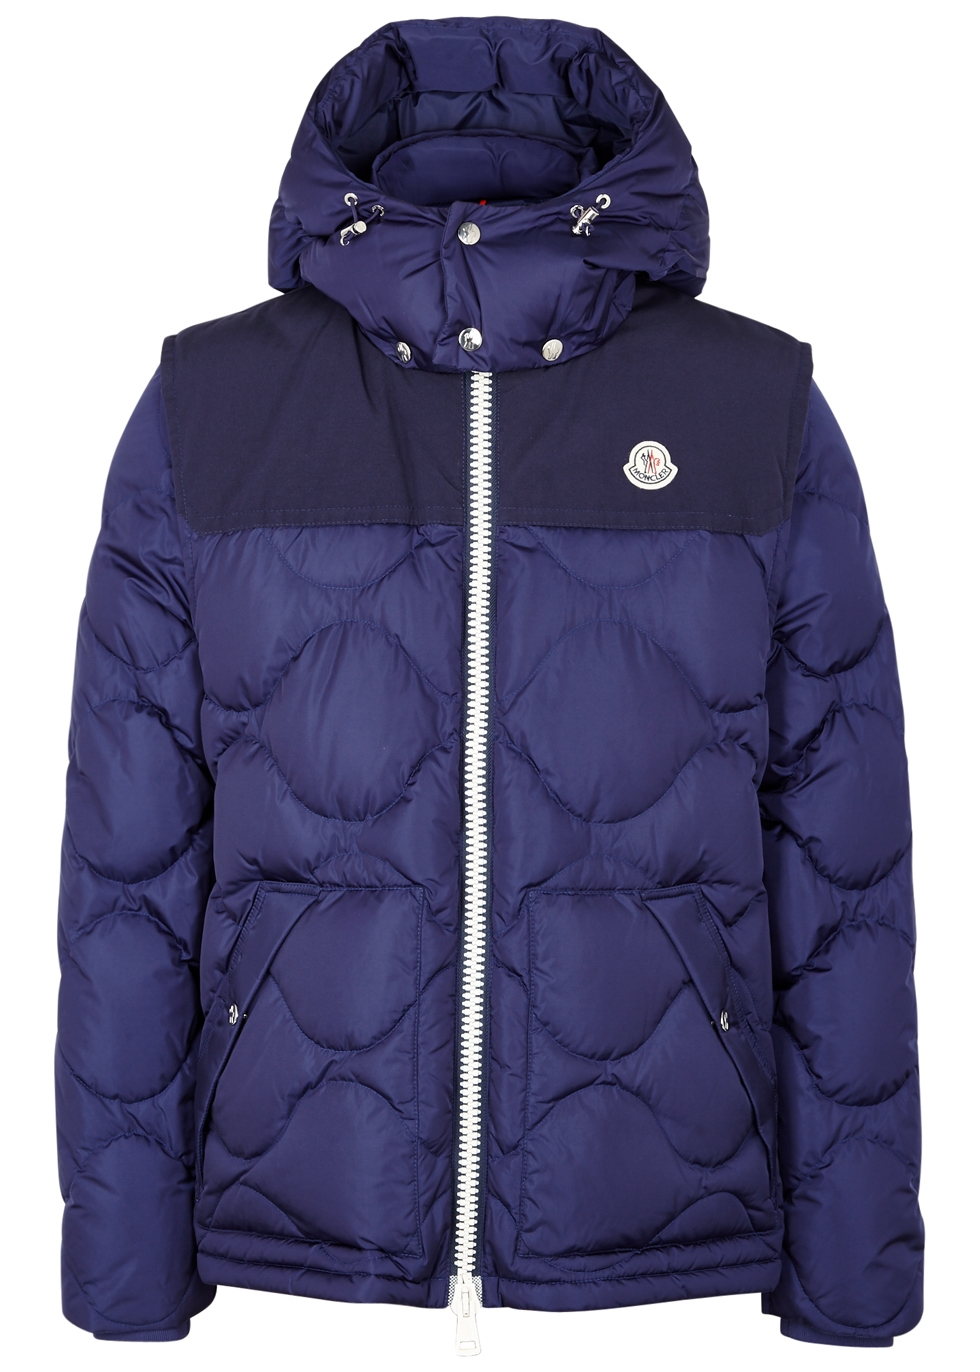 MONCLER ARLES QUILTED SHELL HOODED DOWN JACKET WITH DETACHABLE SLEEVES, ROYAL BLUE